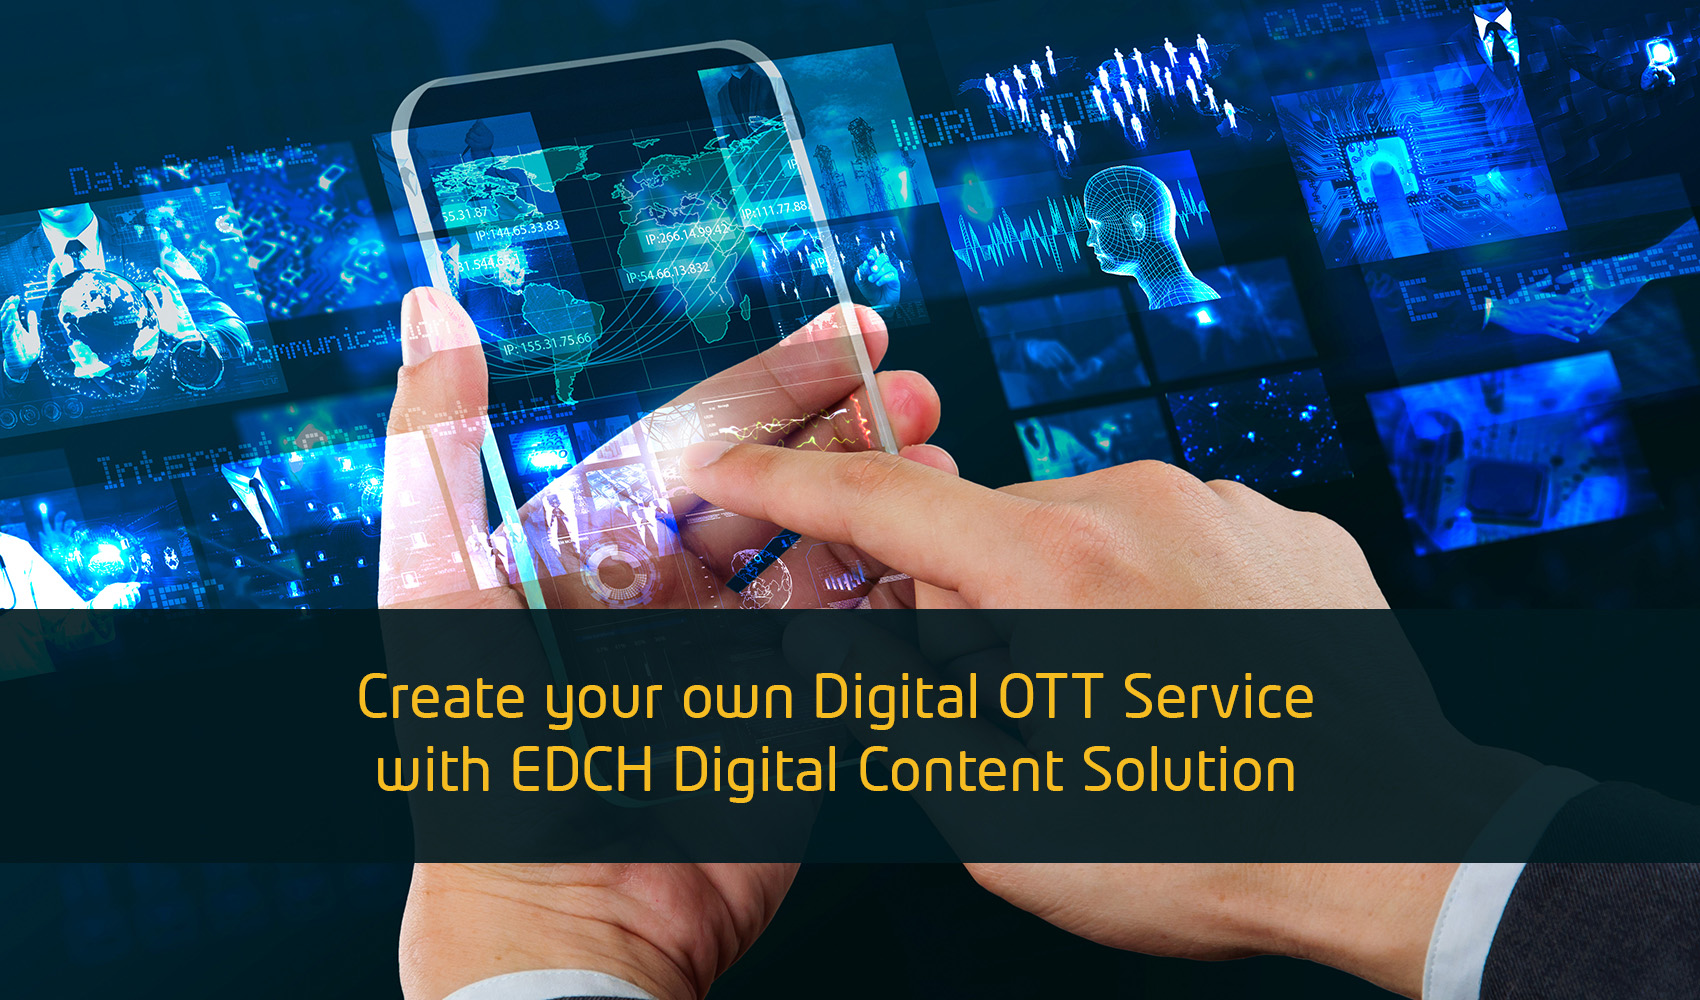 edch-digital-content-solution-carousel